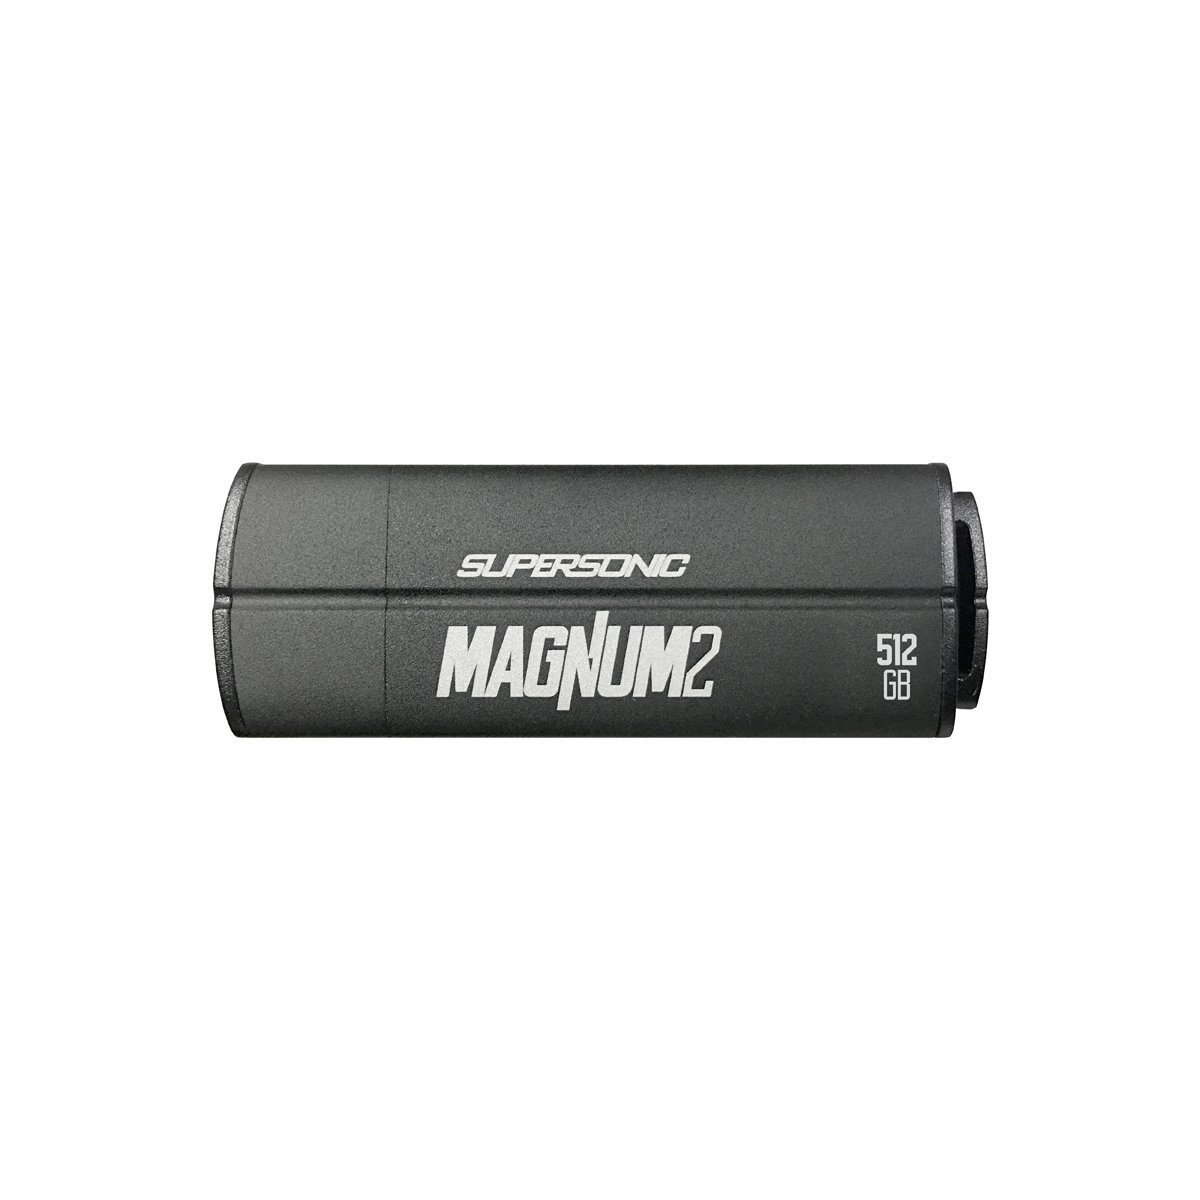 Patriot 512GB Supersonic Magnum 2 USB 3.0 Flash Drive With Up To Read 400MB/sec & Write 300MB/sec- PEF512GSMN2USB by Patriot